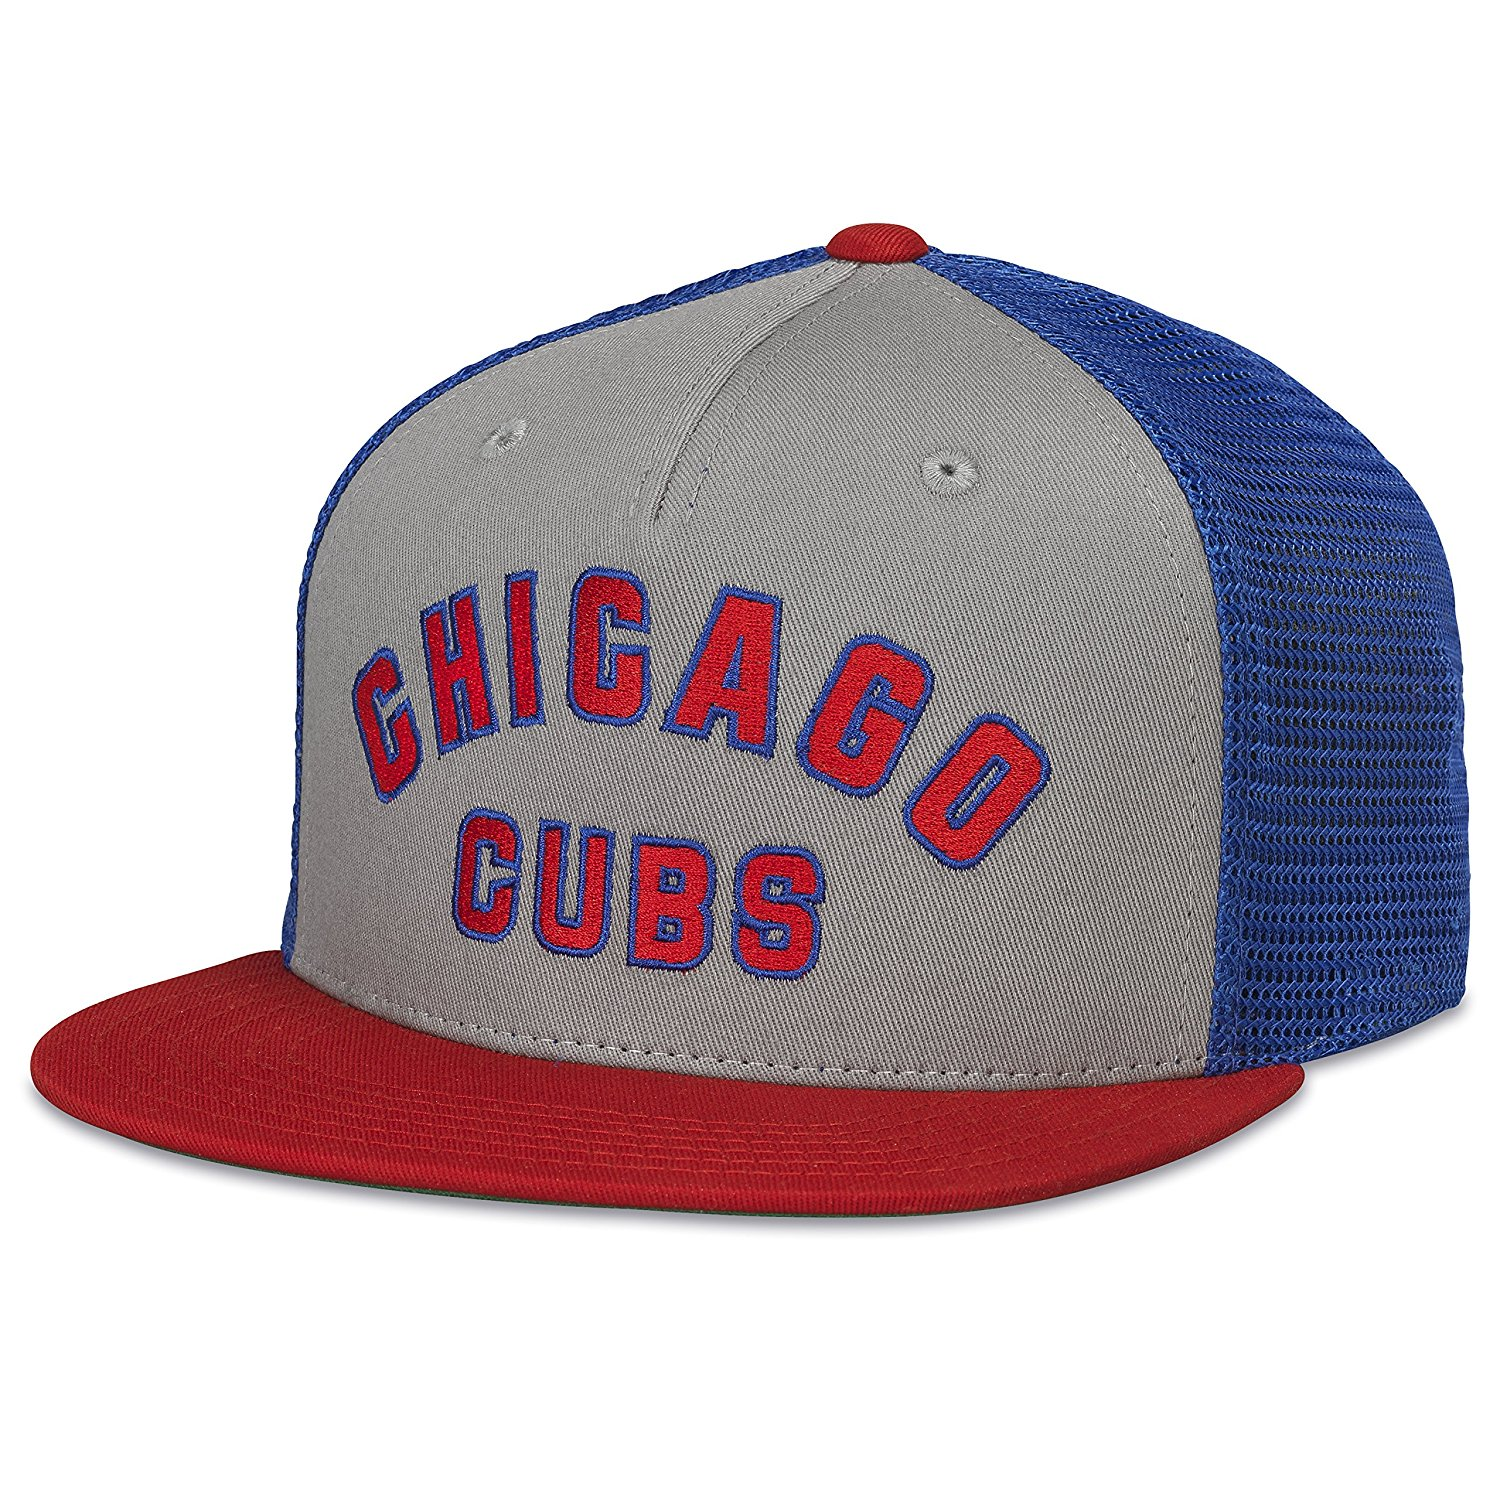 04bbe1f5c53fe Get Quotations · MLB American Needle Pastime Gatekeeper Cooperstown Mesh  Back Adjustable Snapback Hat